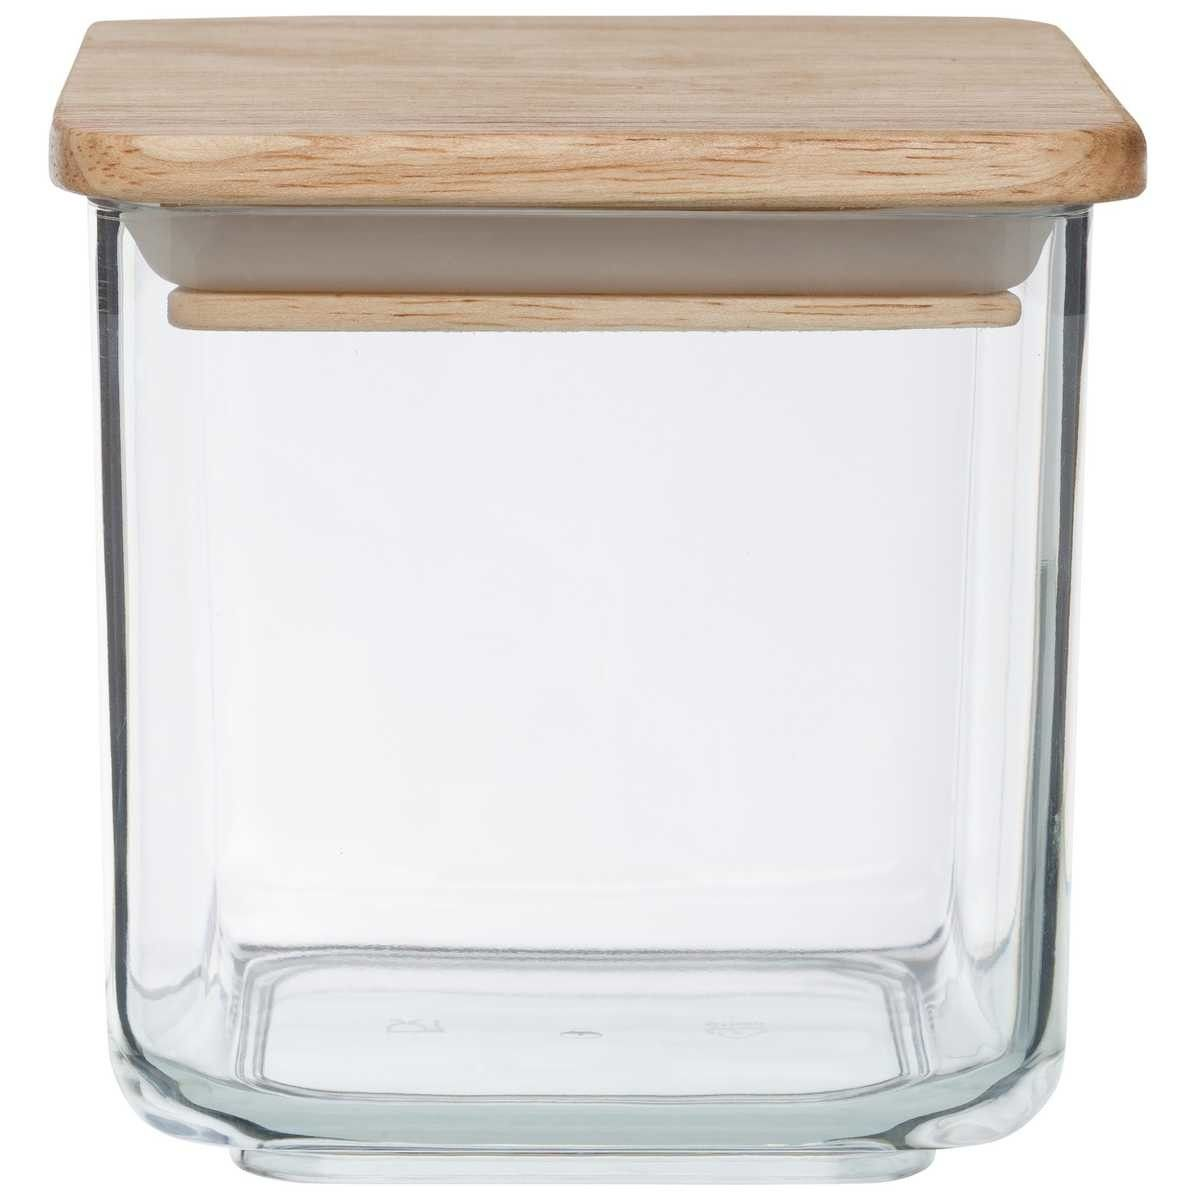 House Home Small Wooden Square Canister Food Storage